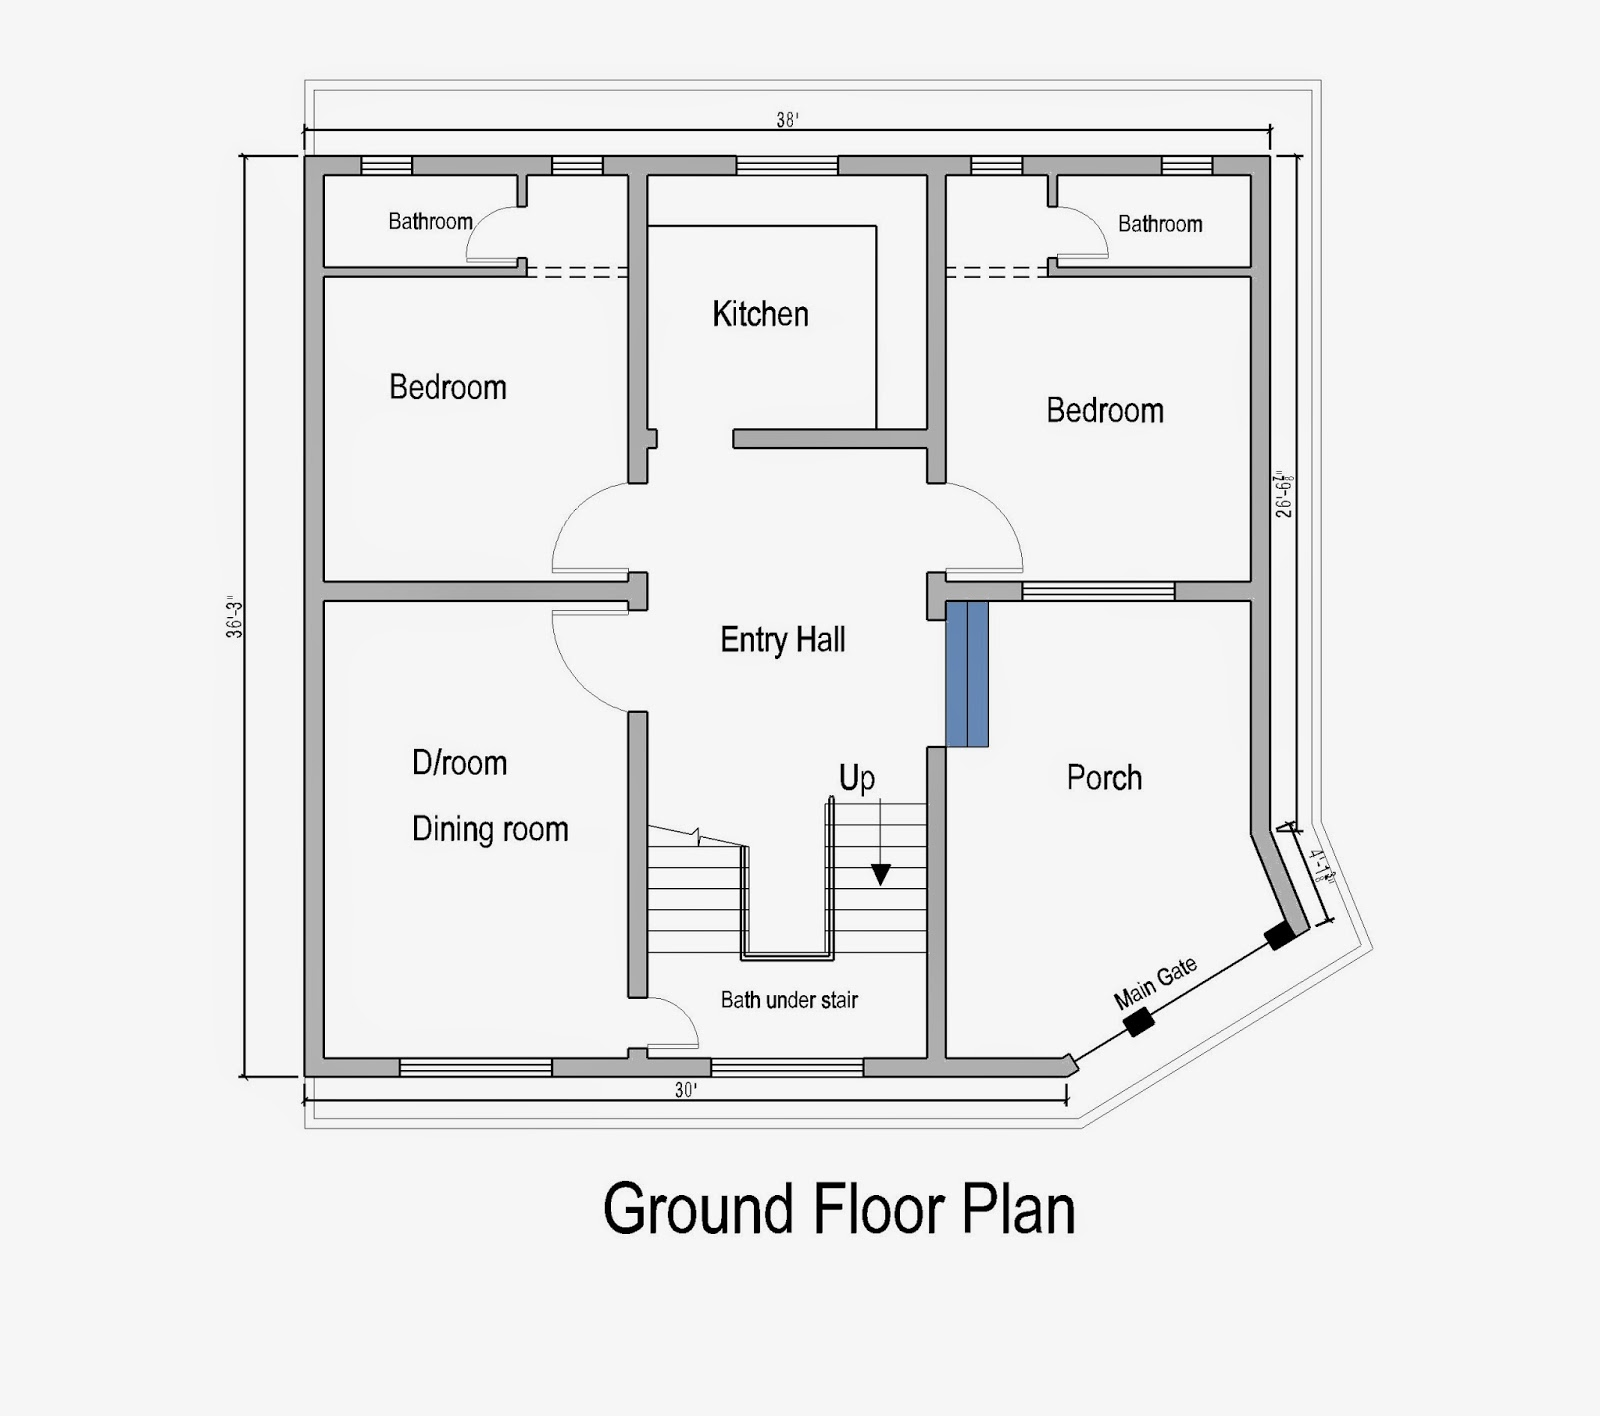 Home plans in pakistan home decor architect designer home plan in pakistan Create own house plan